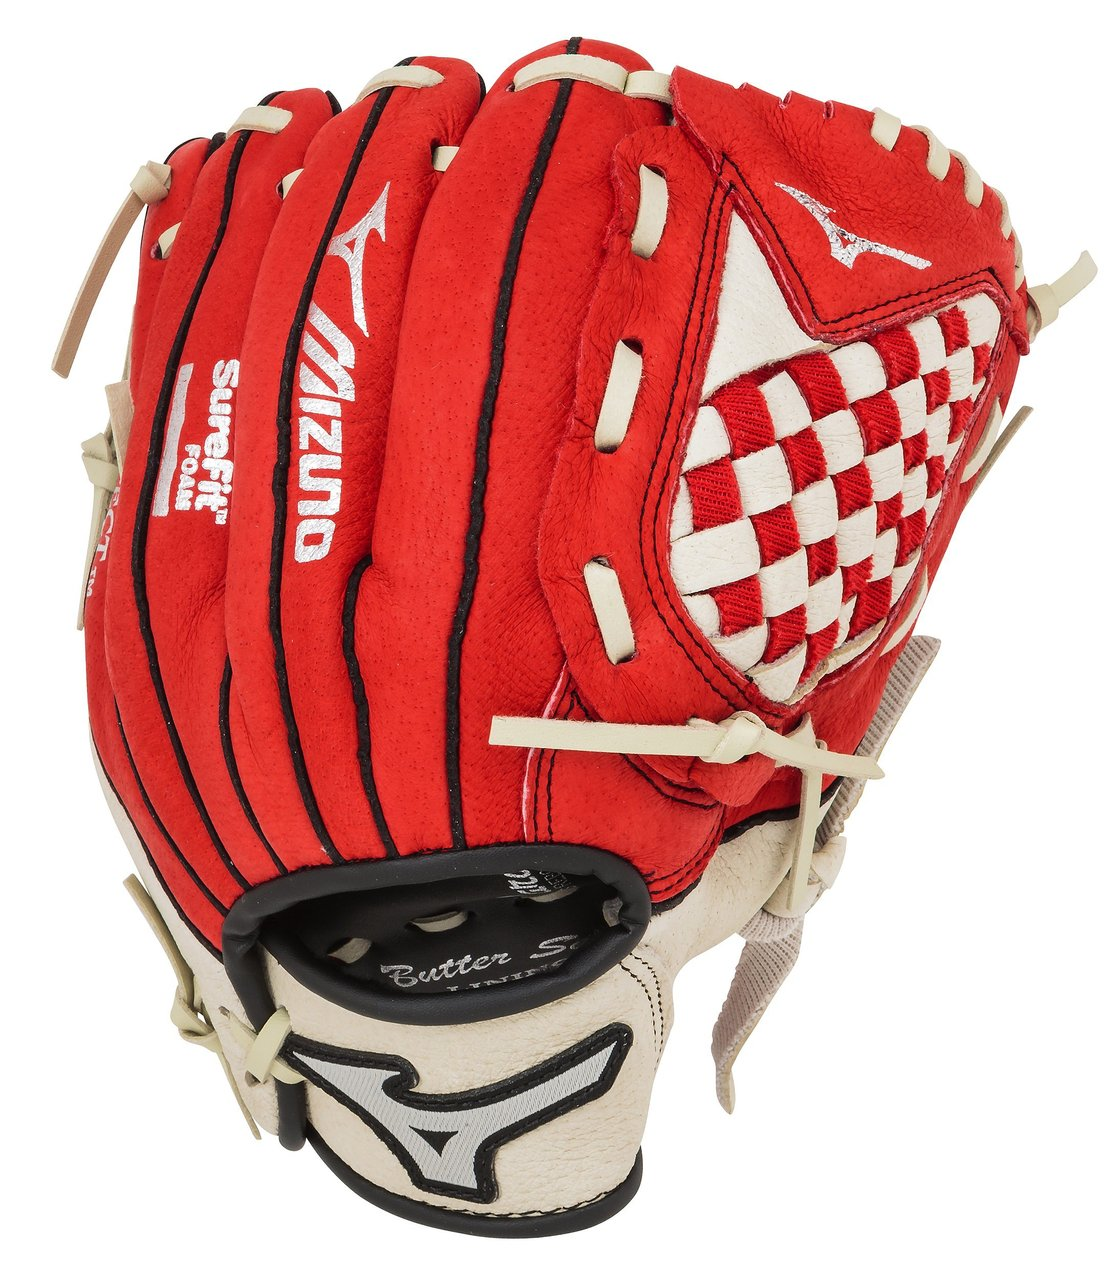 mizuno-prospect-series-gpp1000y1rd-10-inch-red-youth-baseball-glove-right-handed-throw GPP1000Y1RD-Right Handed Throw Mizuno 041969127919 Mizuno Youth Prospect Series Baseball Gloves. Patented Power Close makes catching